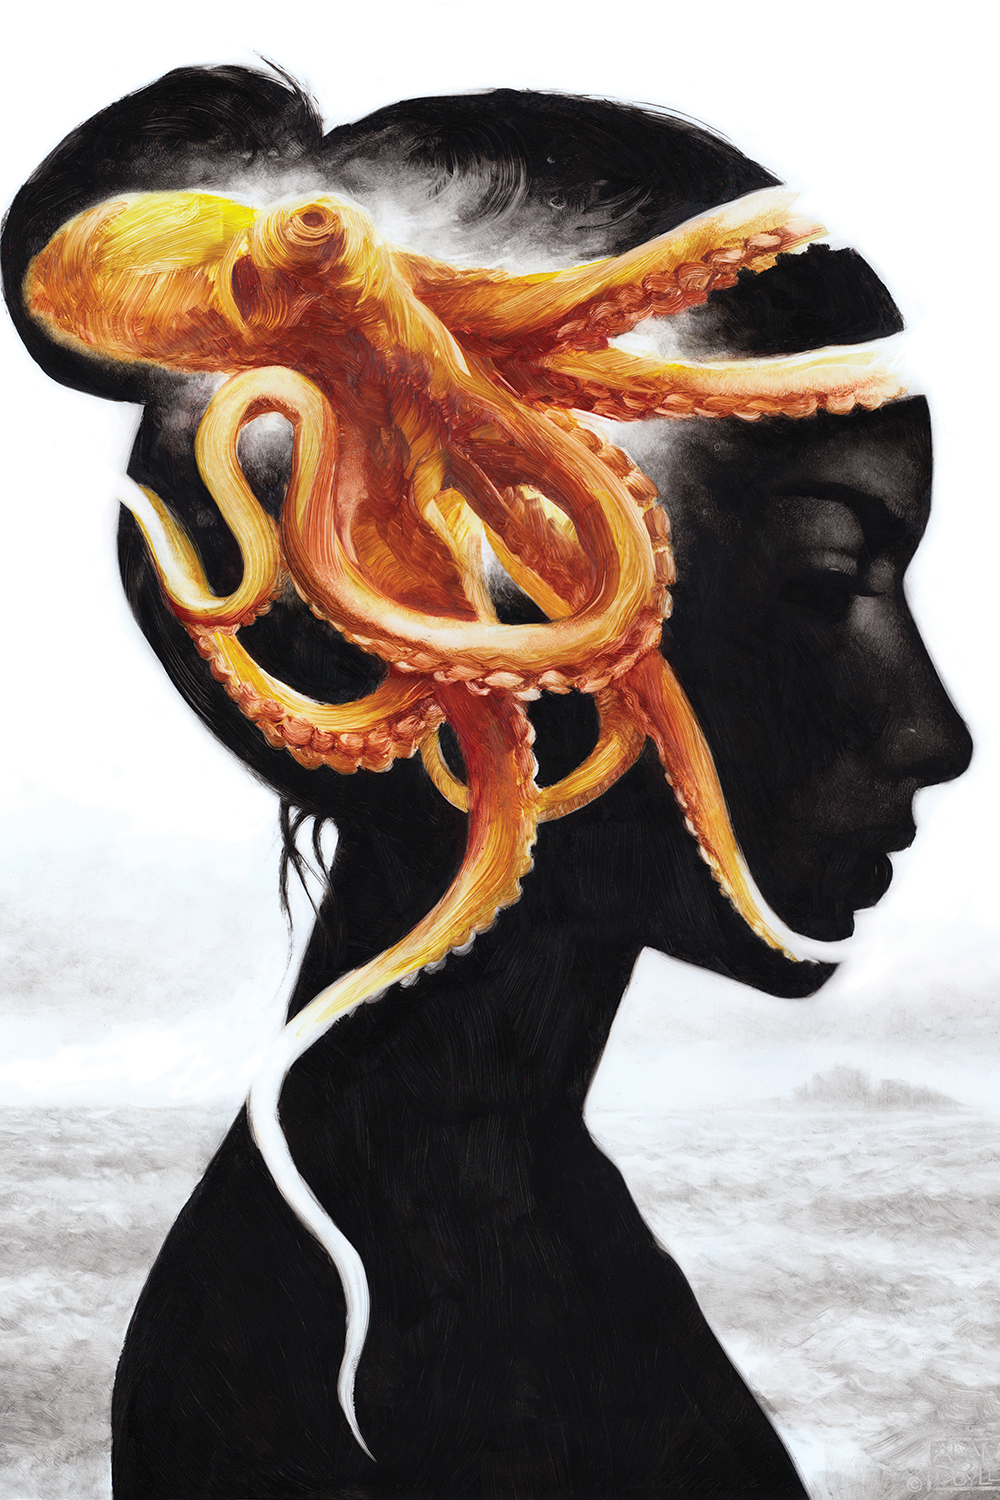 a silhouette of a woman with an orange squid on her head